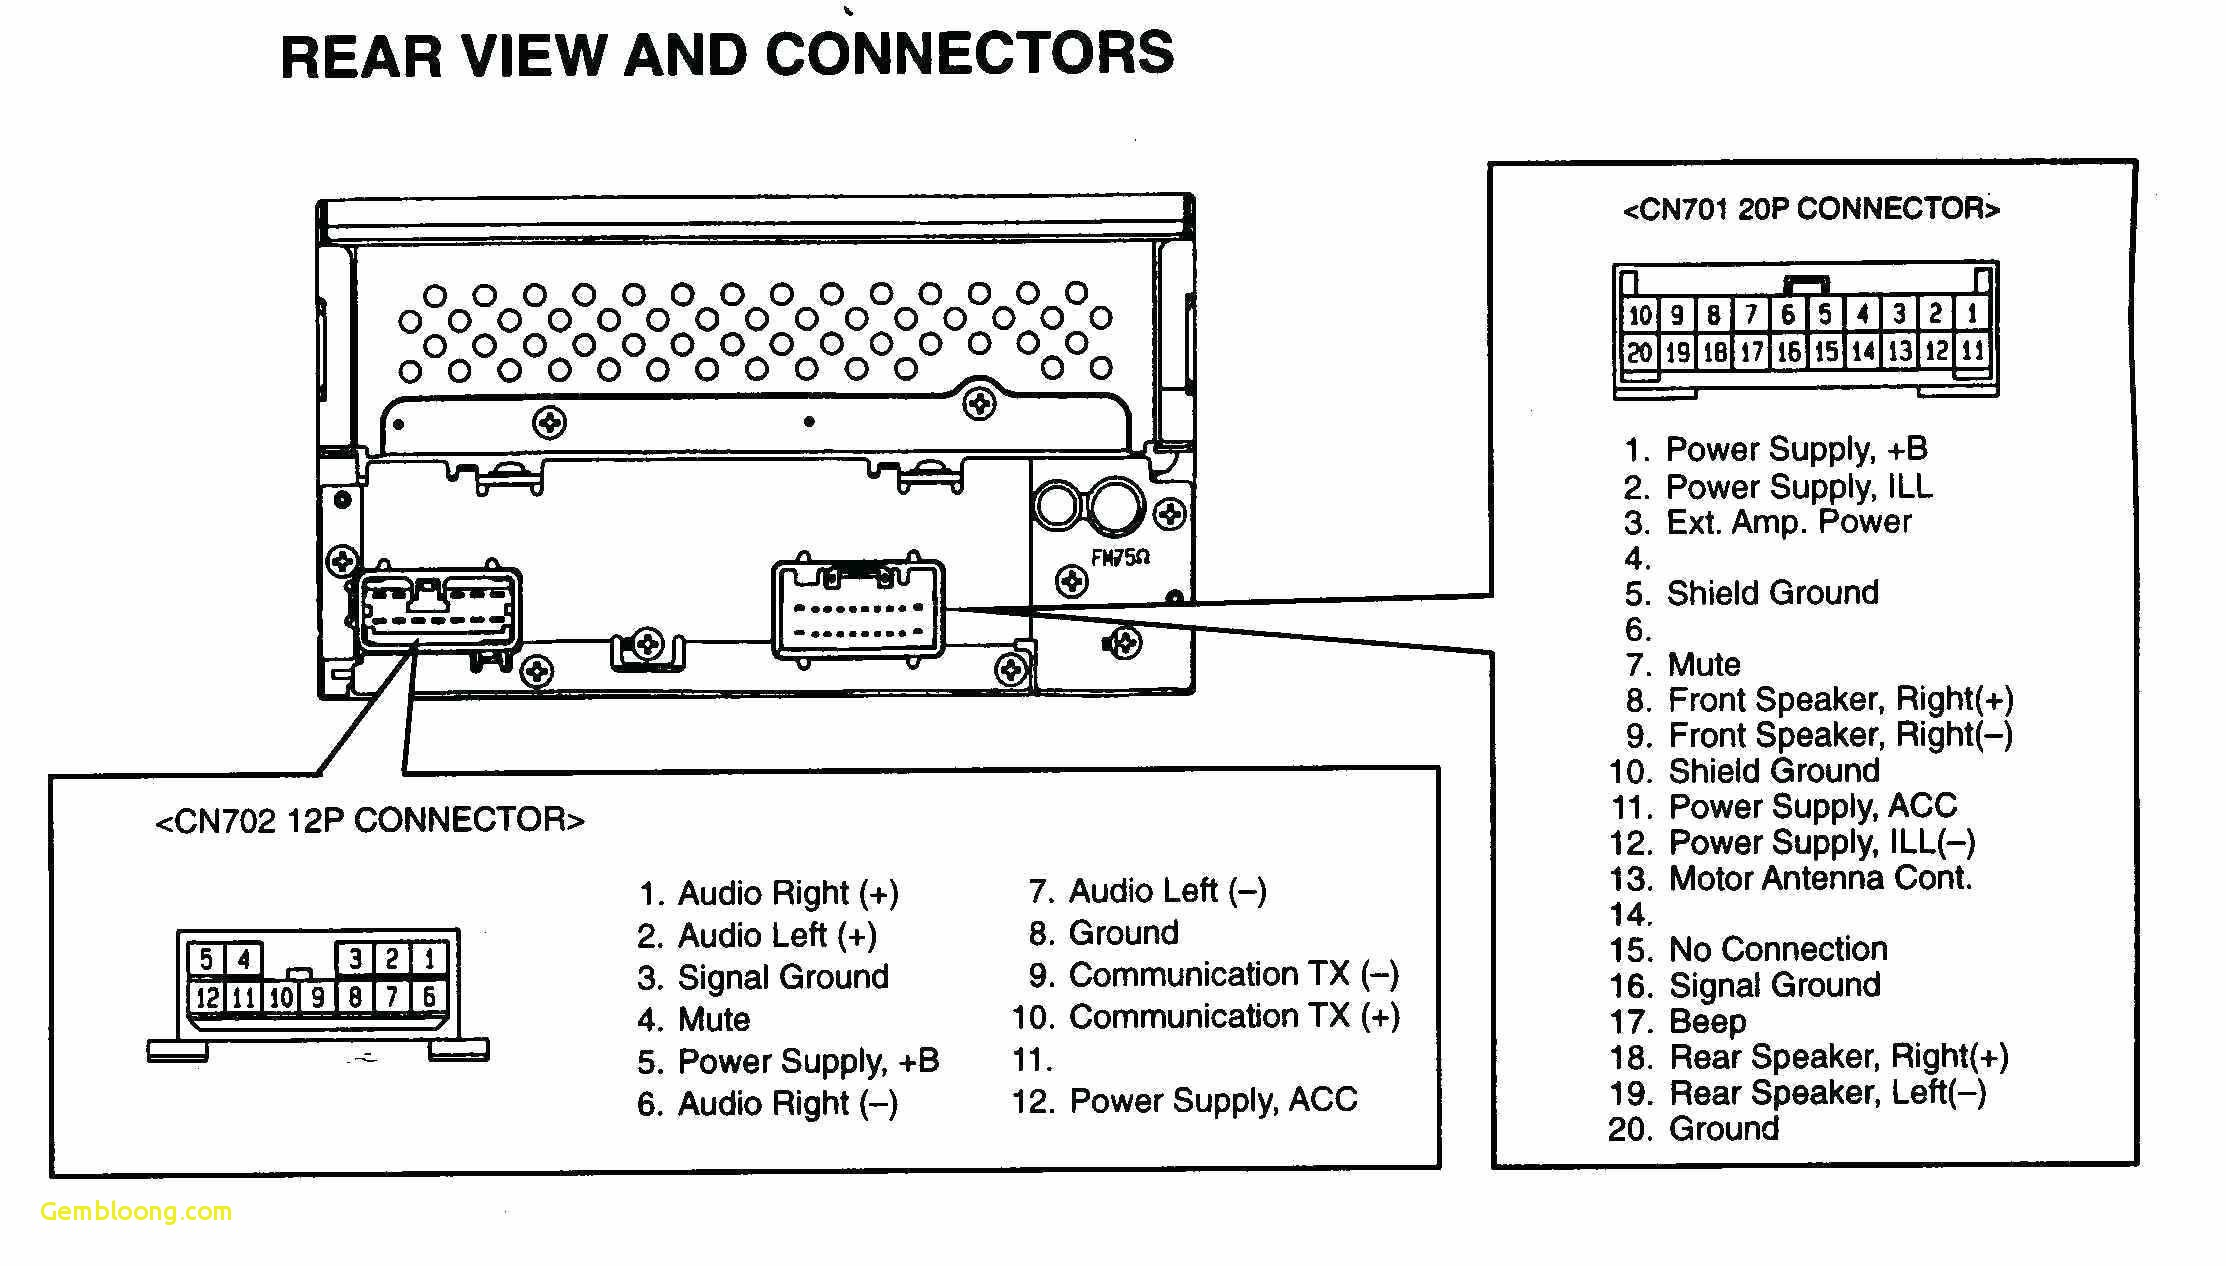 e38 radio wiring diagram - fusebox and wiring diagram wires-lover - wires -lover.parliamoneassieme.it  diagram database